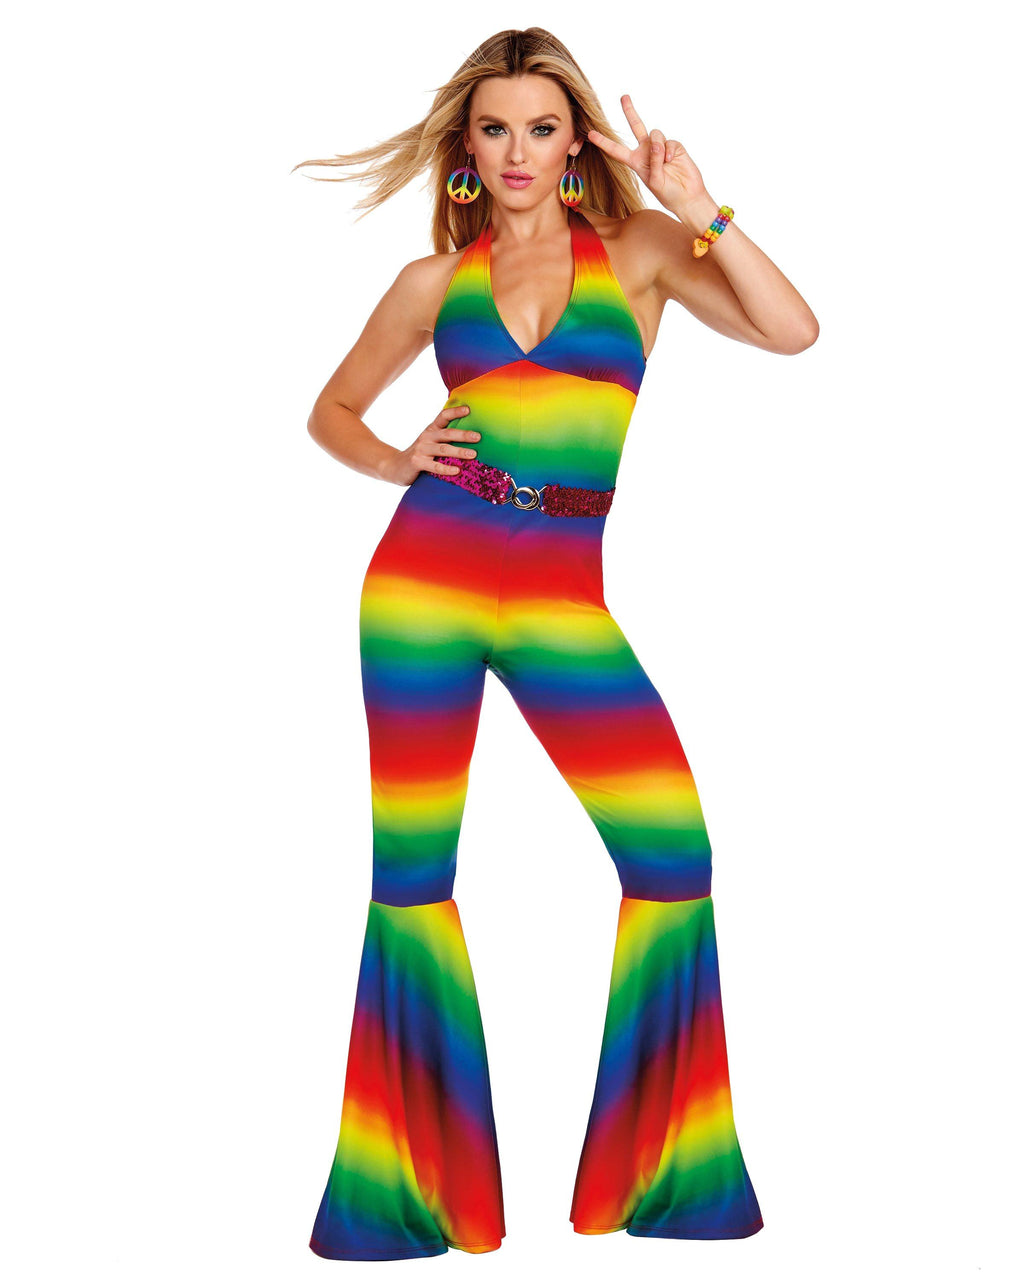 Women's Rainbow Women's Costume Dreamgirl Costume